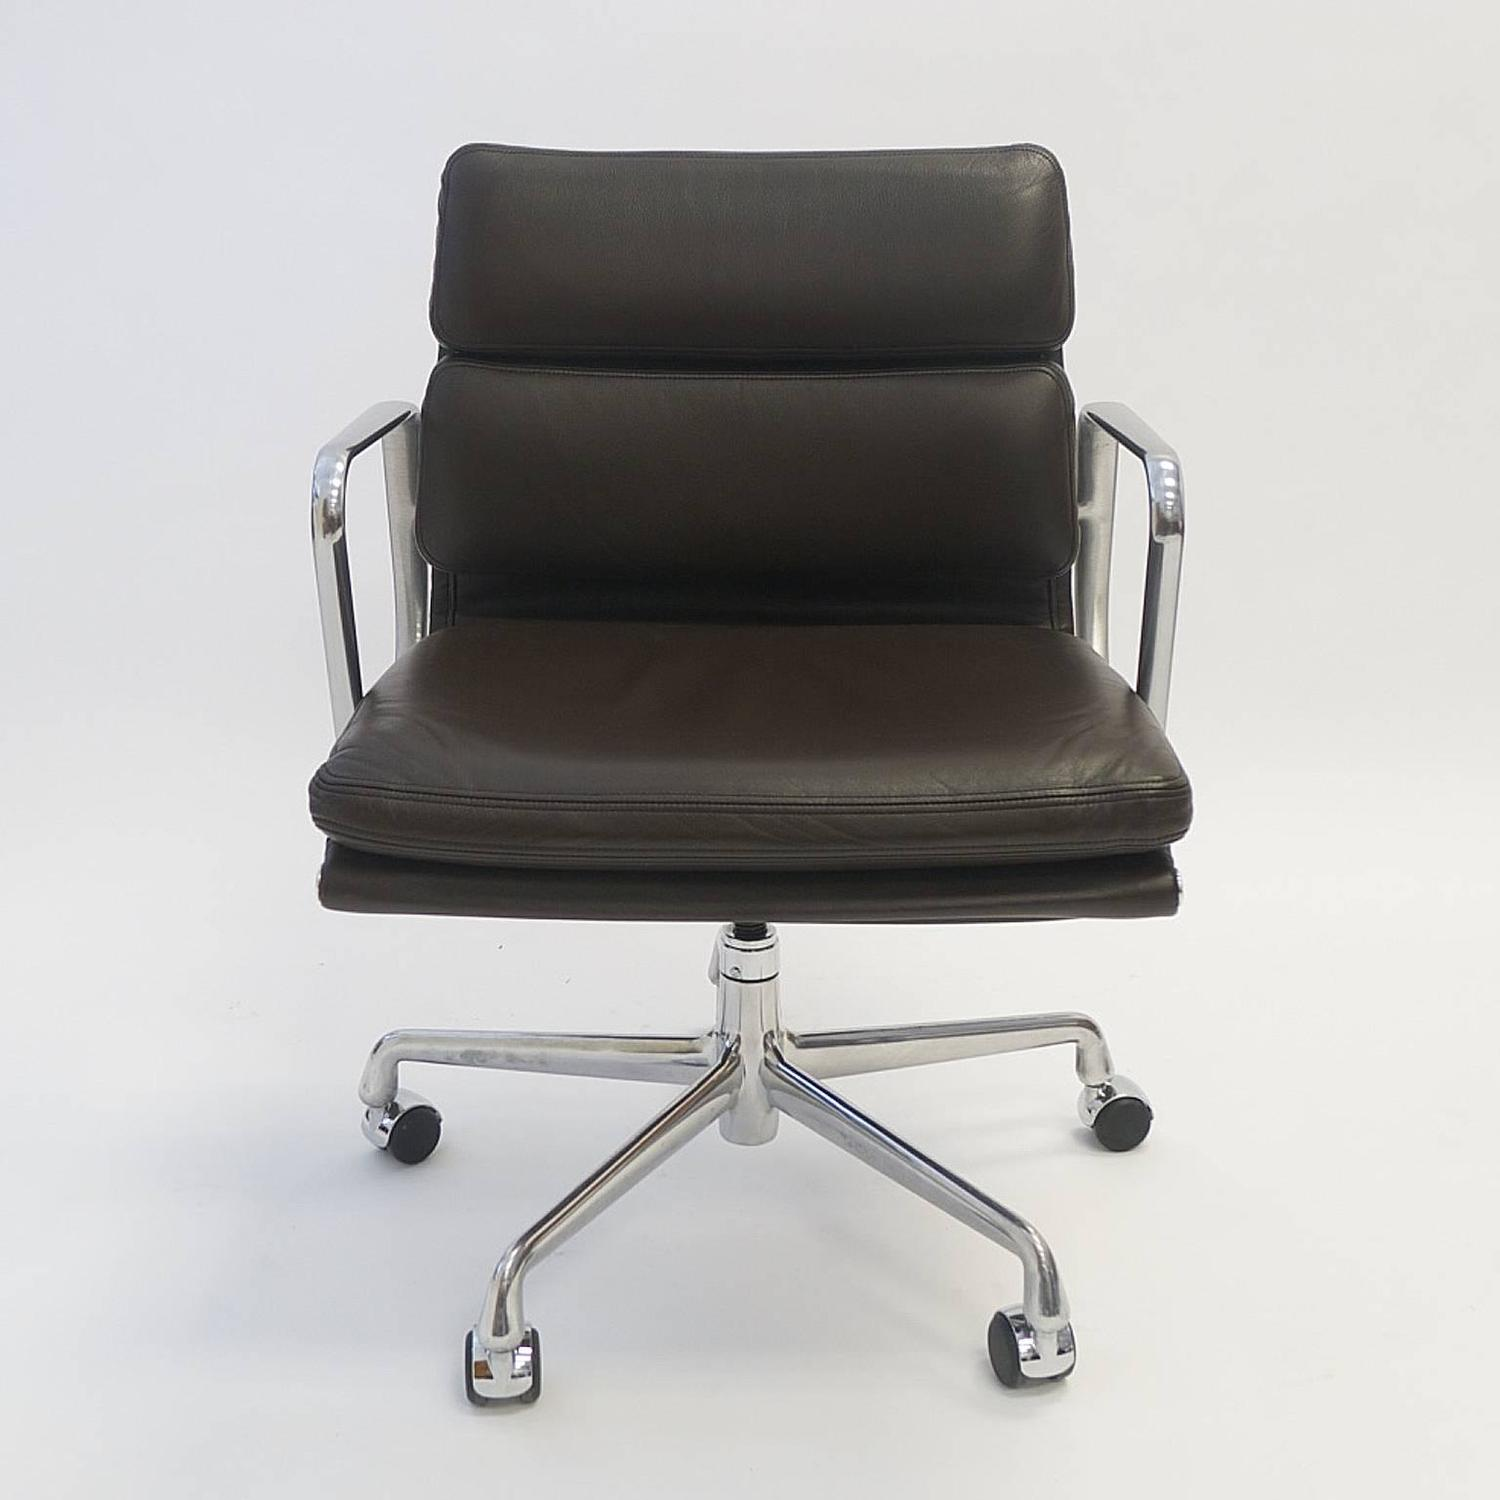 and ray eames soft pad chair in leather by herman miller at 1stdibs